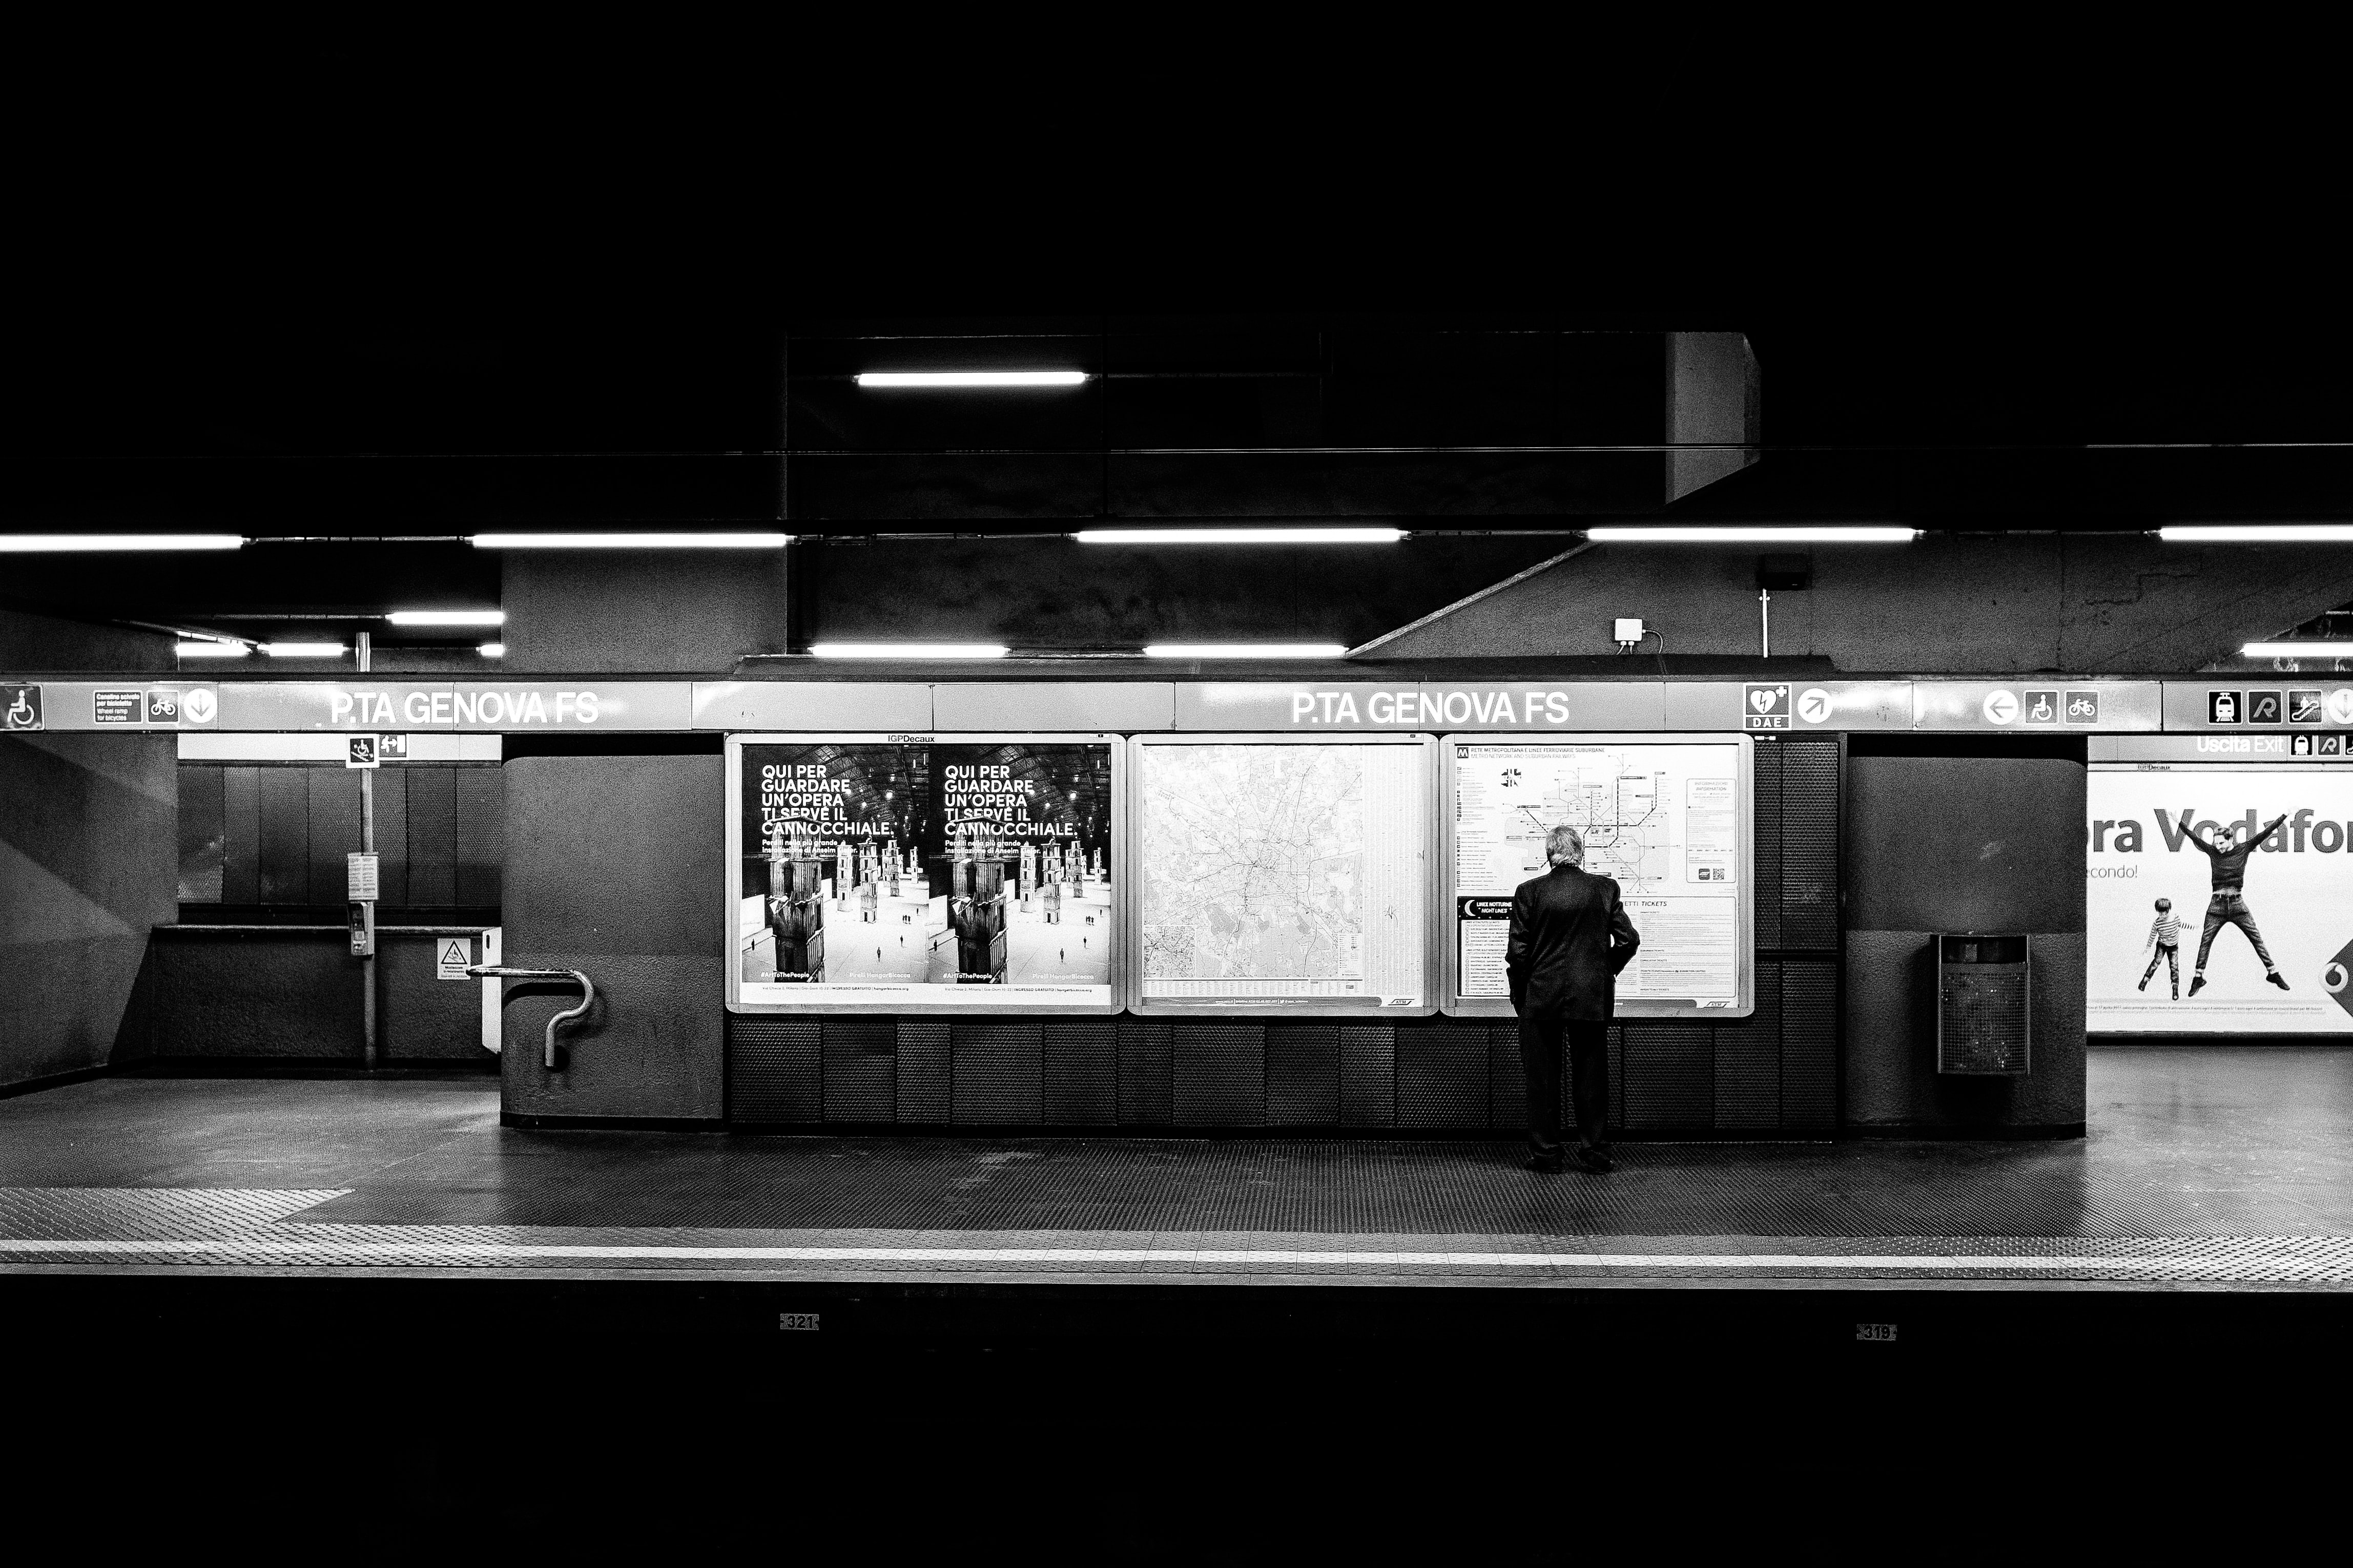 grayscale photo of man waiting on train station